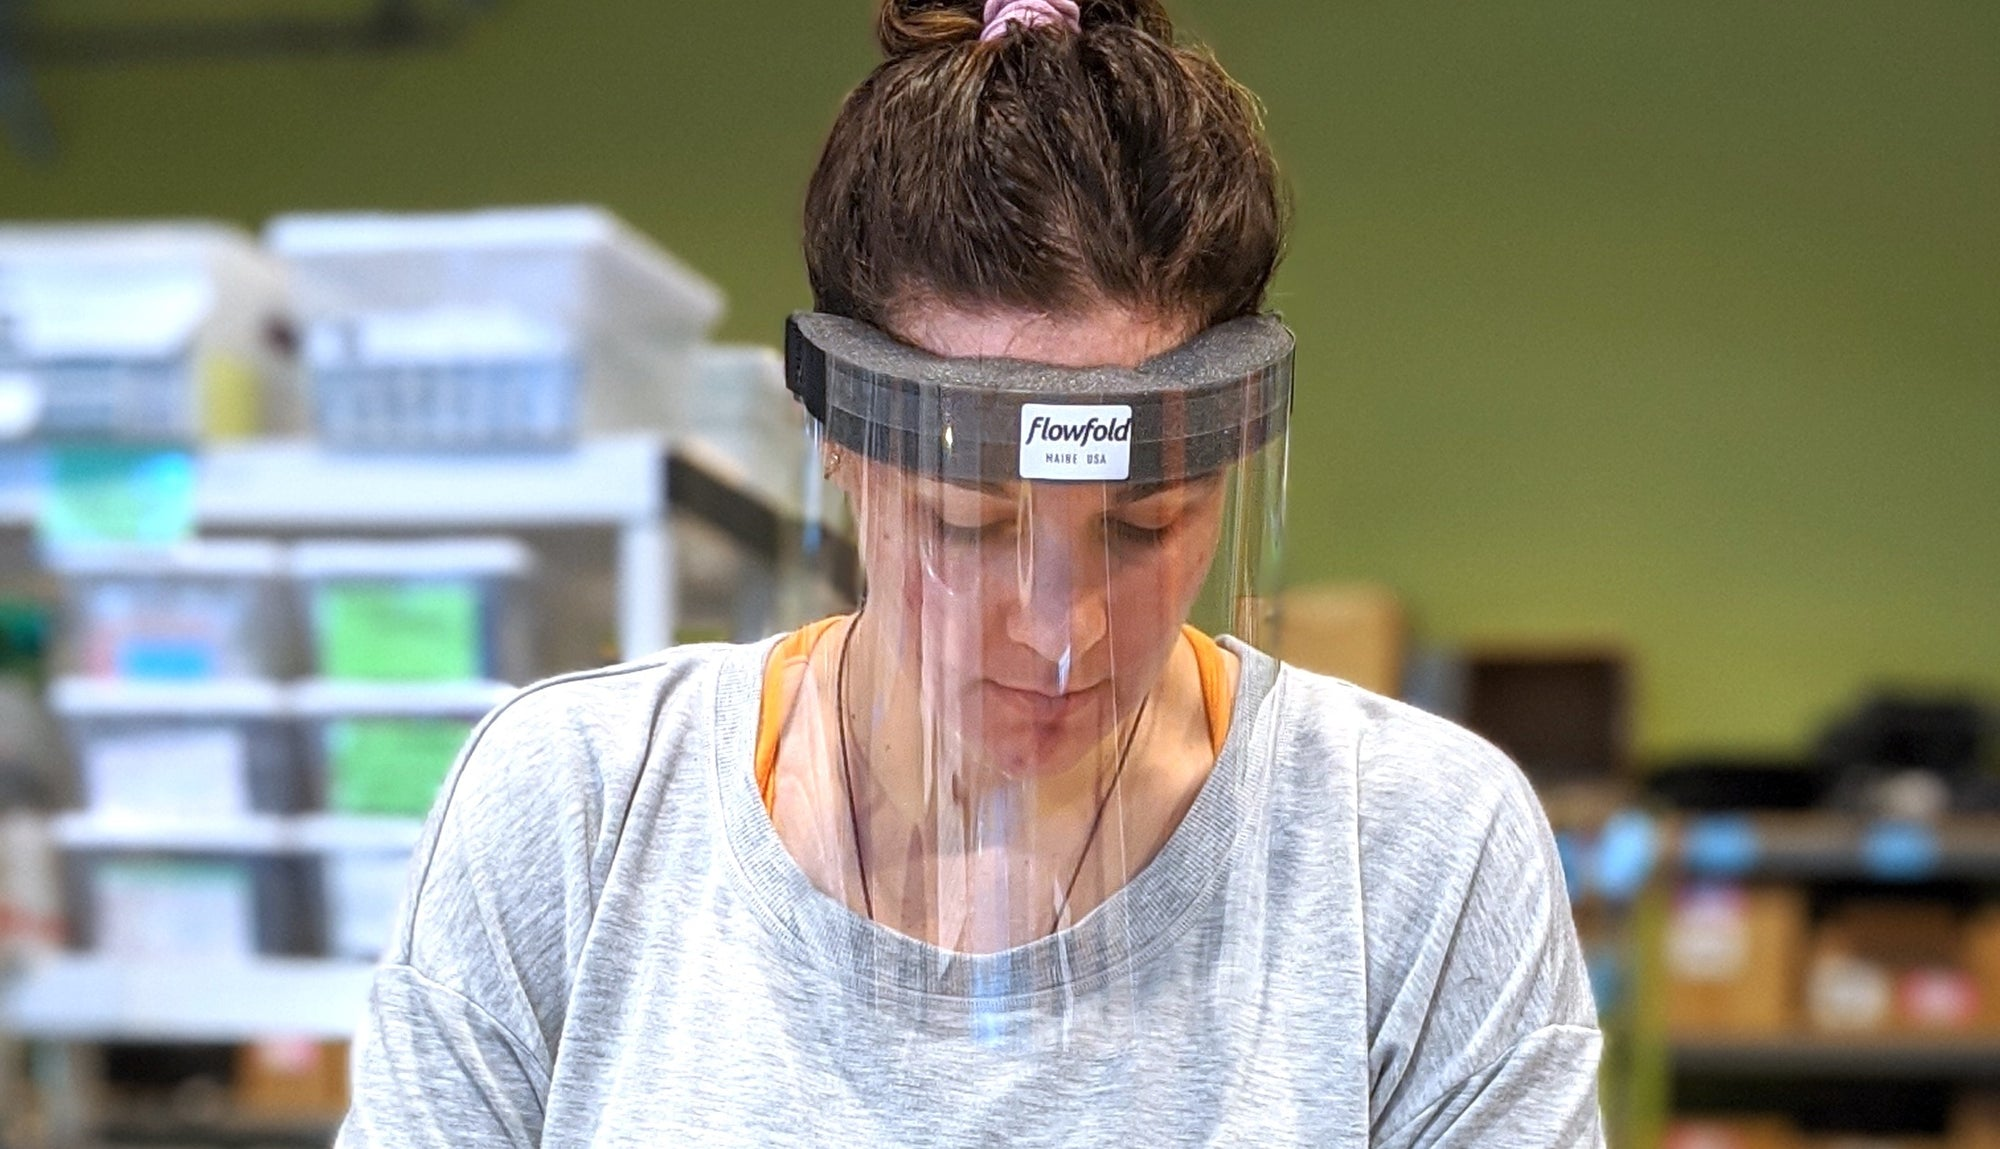 We've Pivoted Production to Manufacture Face Shields in Response to Hospital Shortages